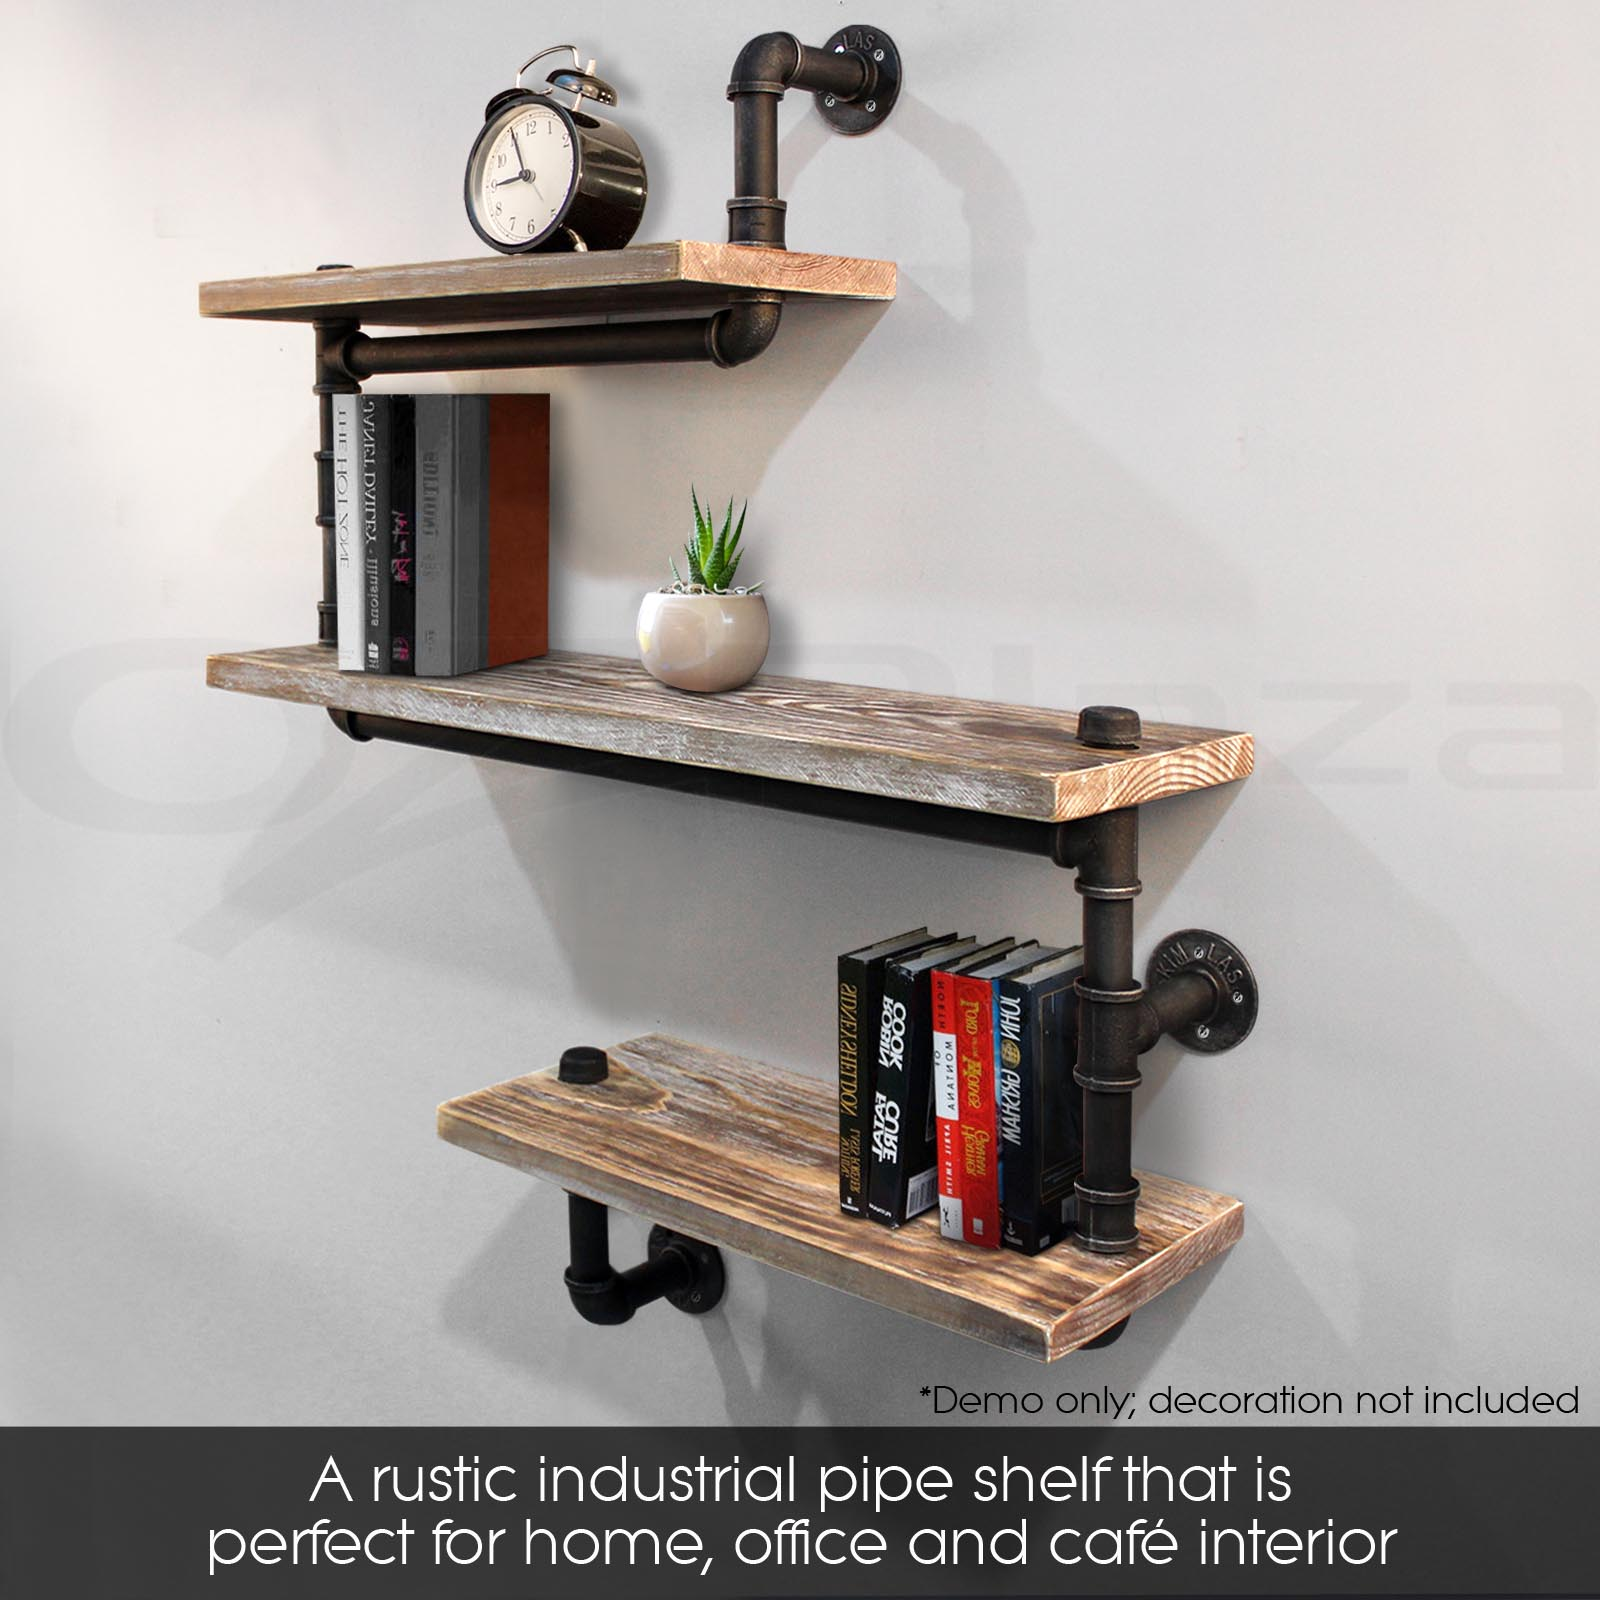 Rustic industrial diy pipe shelf storage vintage wooden for Mountain shelf diy